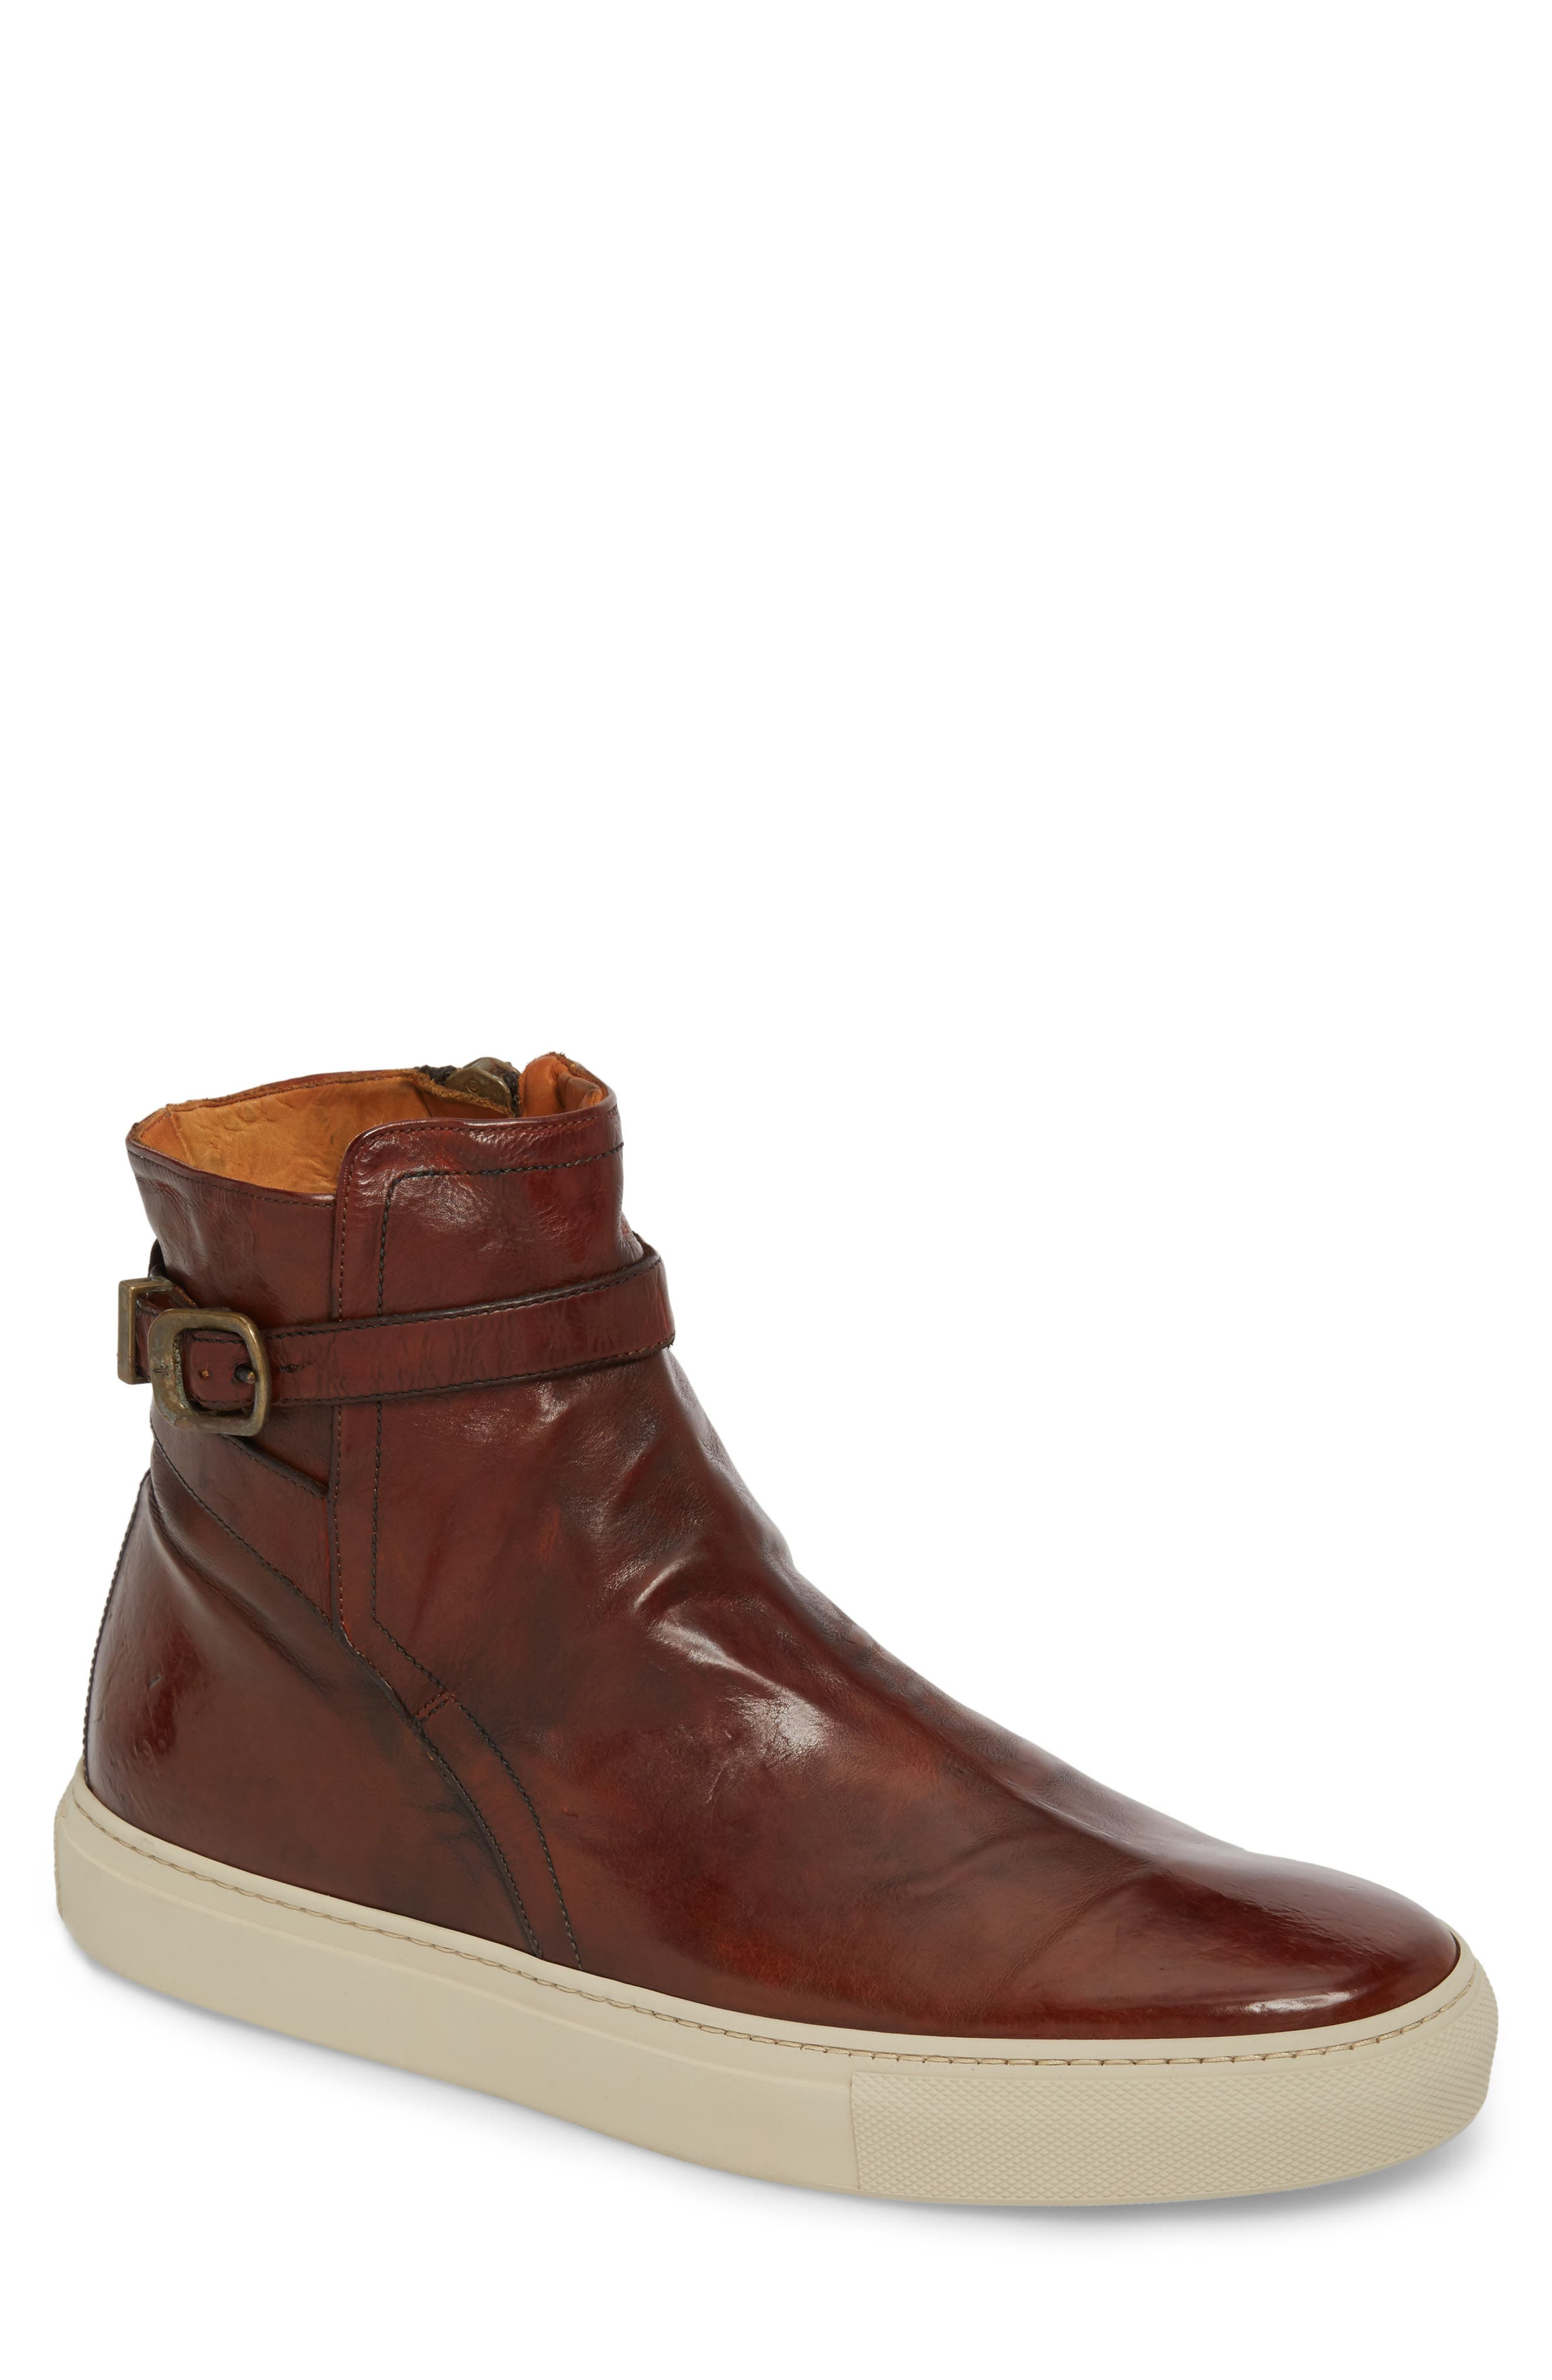 Frye Owen Jodhpur High Top Sneaker (Men)